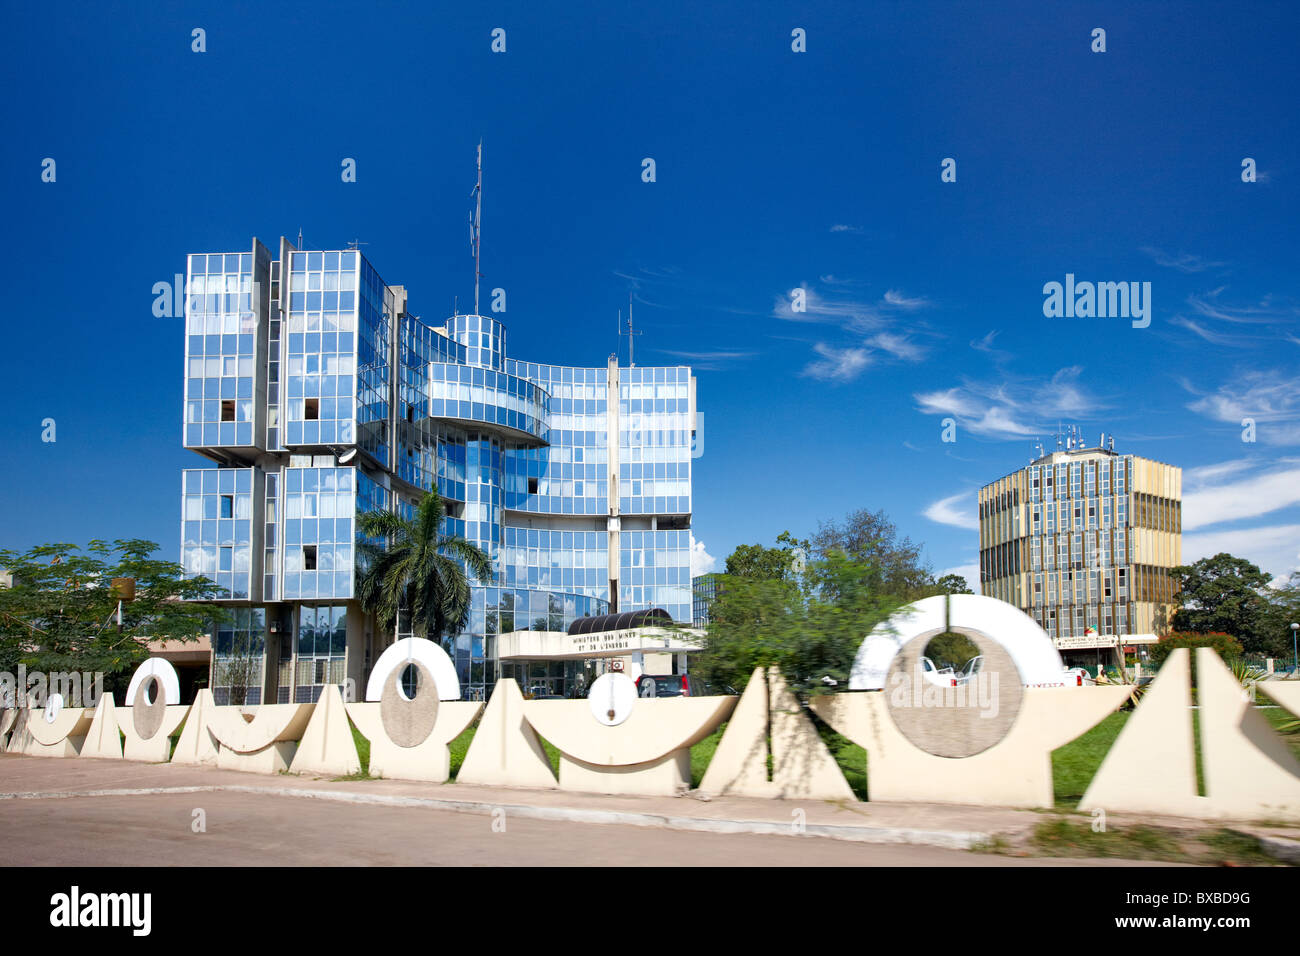 Ministry of Mines and Energy (Ministere des Mines et de L'Energie), Brazzaville, Republic of Congo, Africa - Stock Image